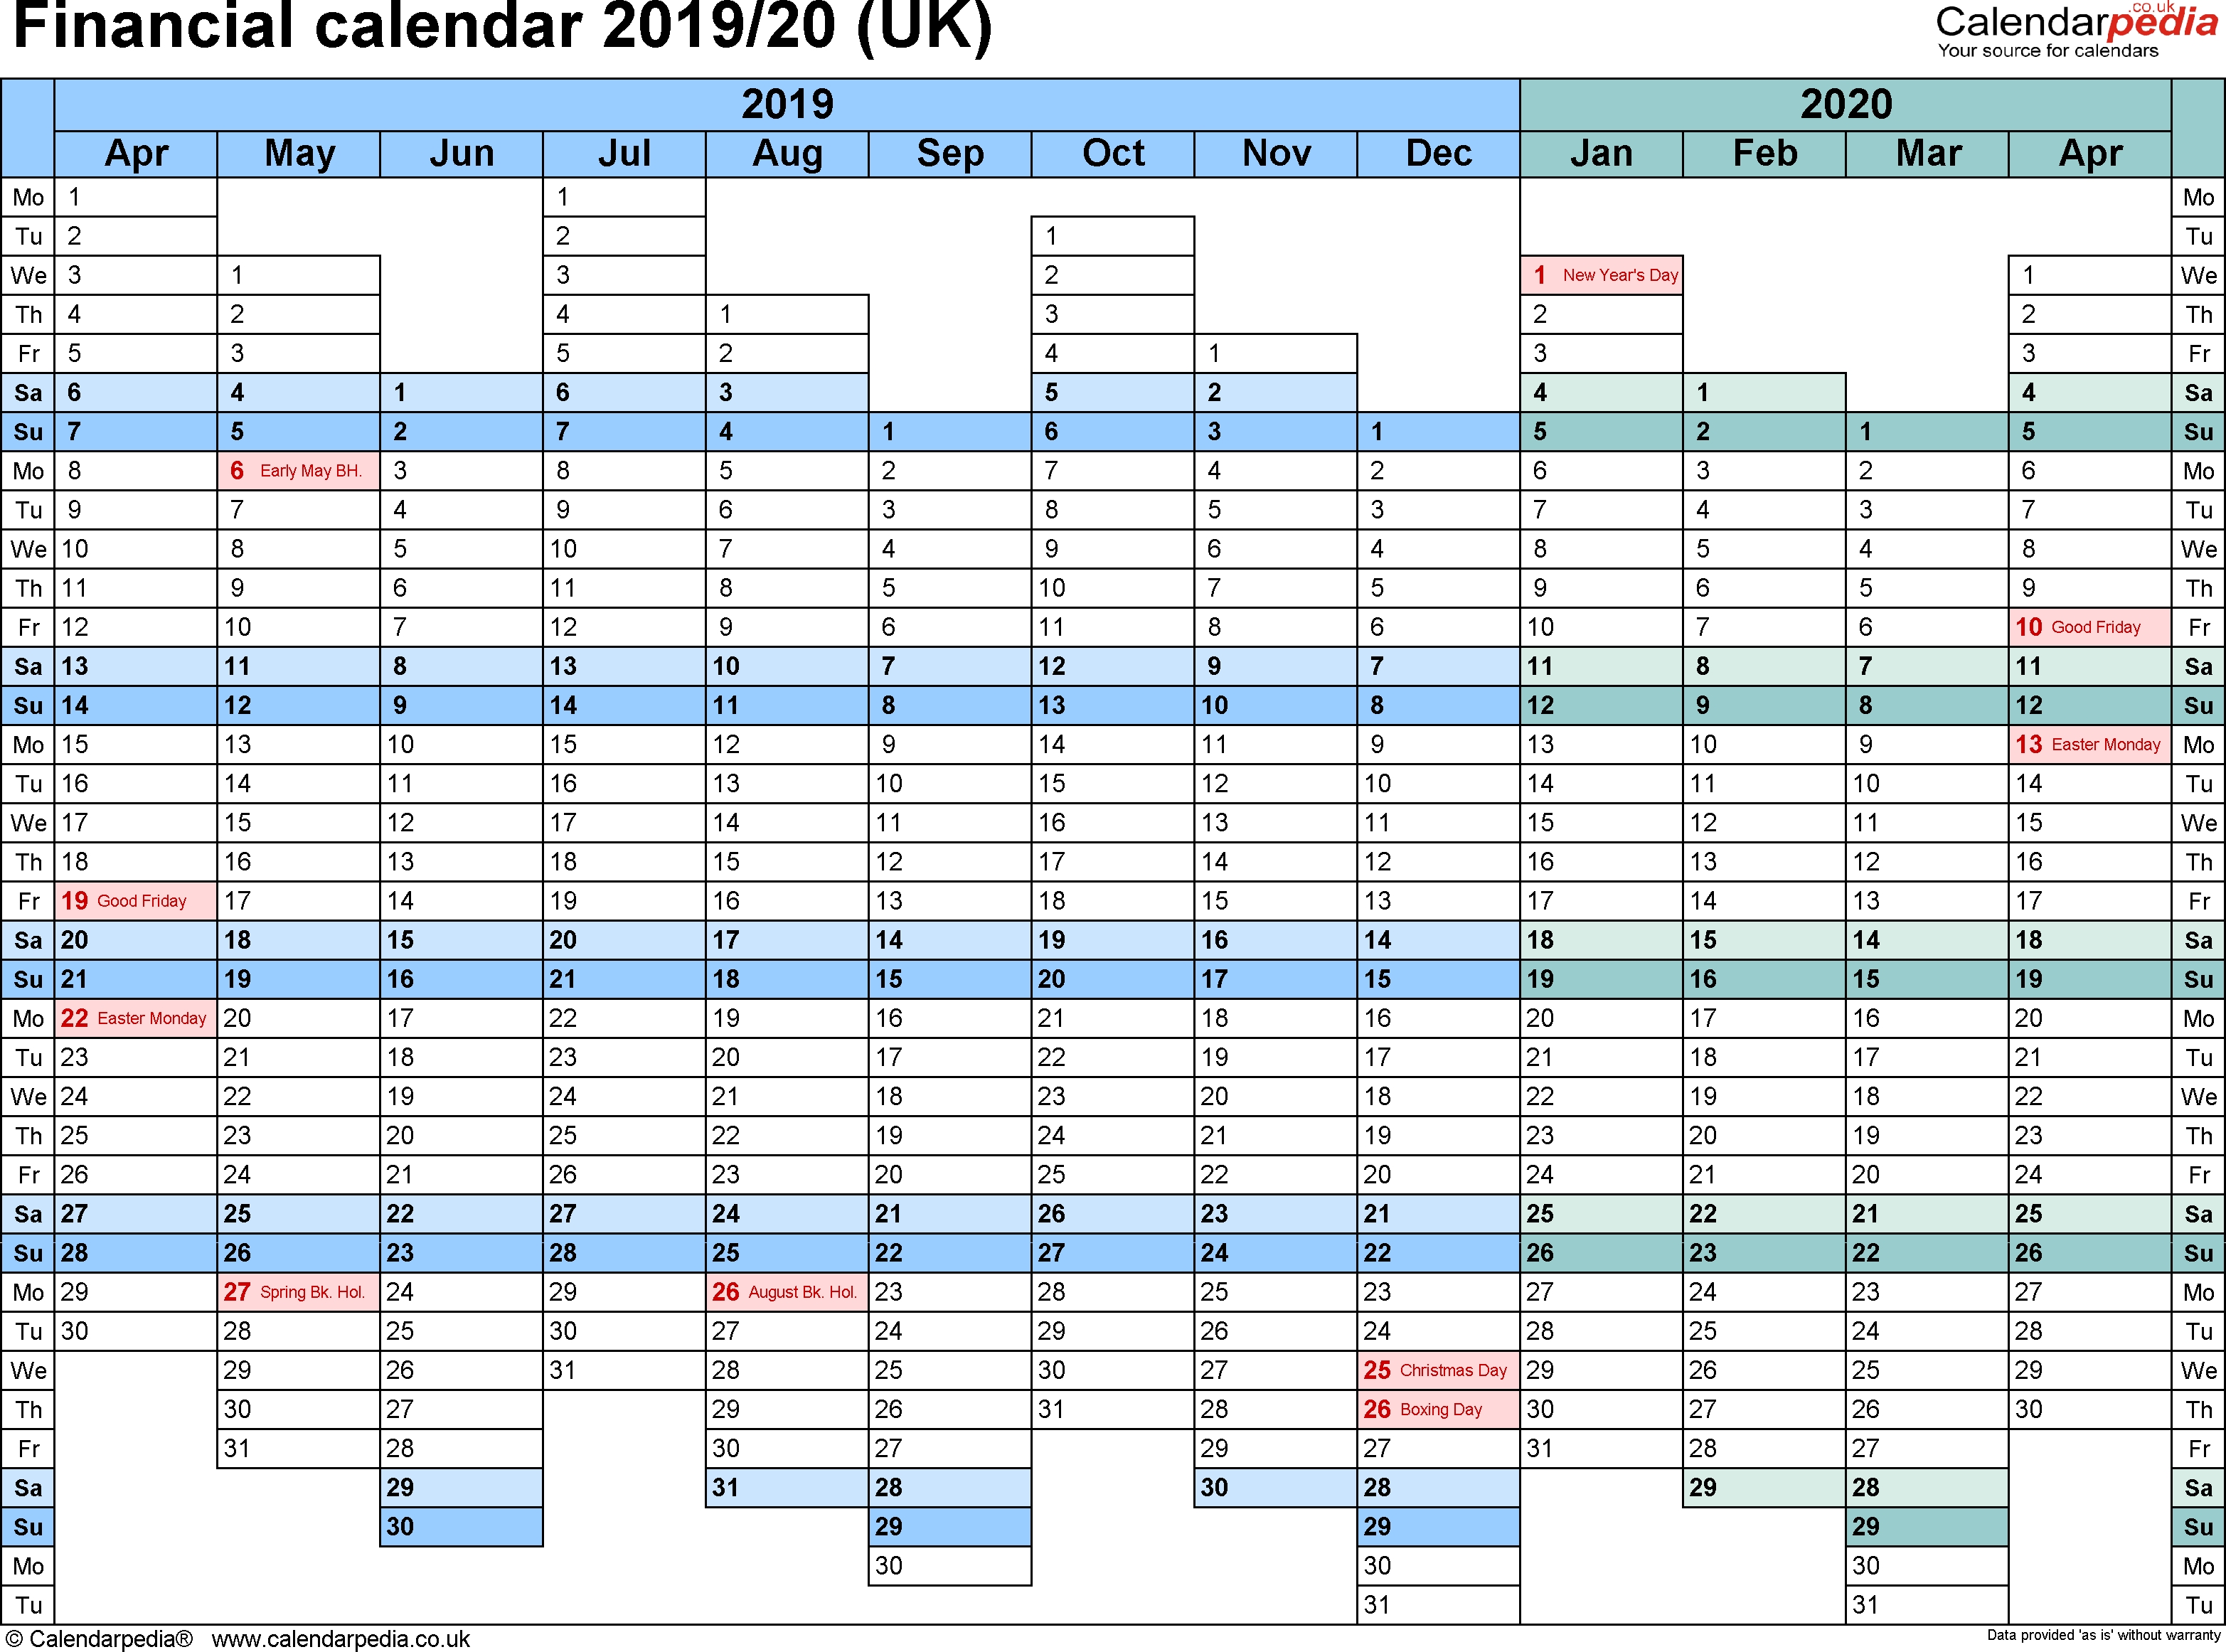 Financial Calendars 2019/20 (Uk) In Pdf Format pertaining to Tax Calendar For 2019/2020